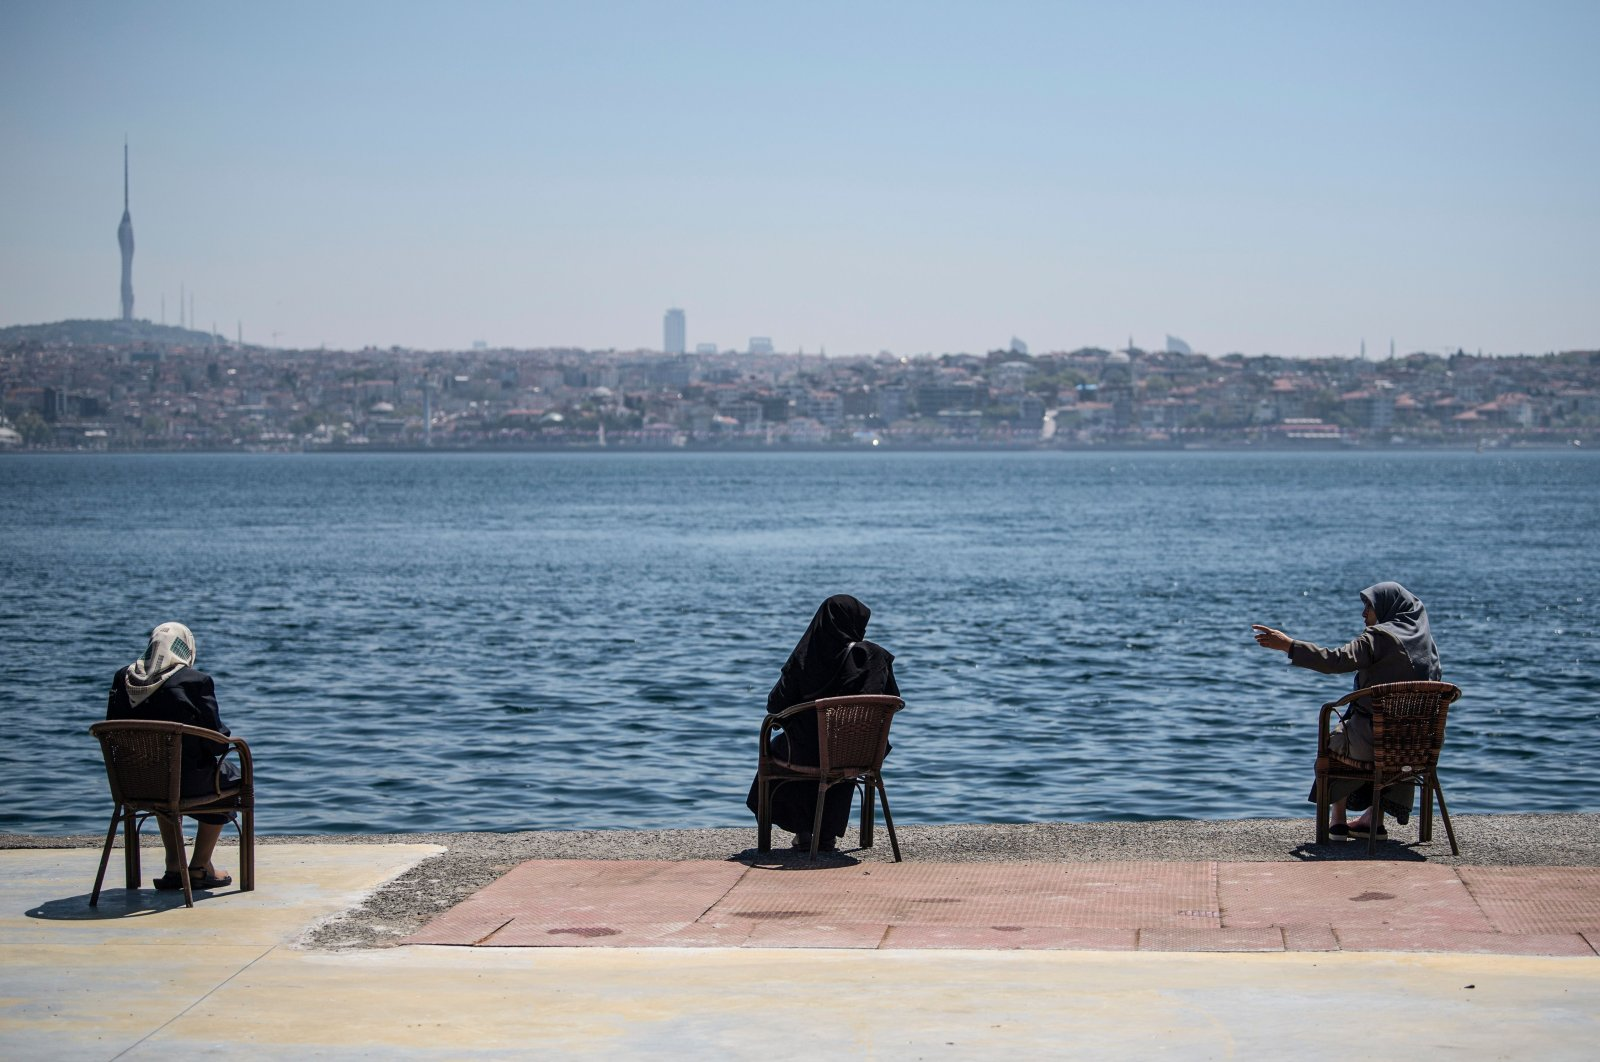 Women wearing protective face masks sit apart following social distancing measures at the seaside overlooking the Bosporus in Istanbul, Turkey, May 10, 2020. (AP Photo)